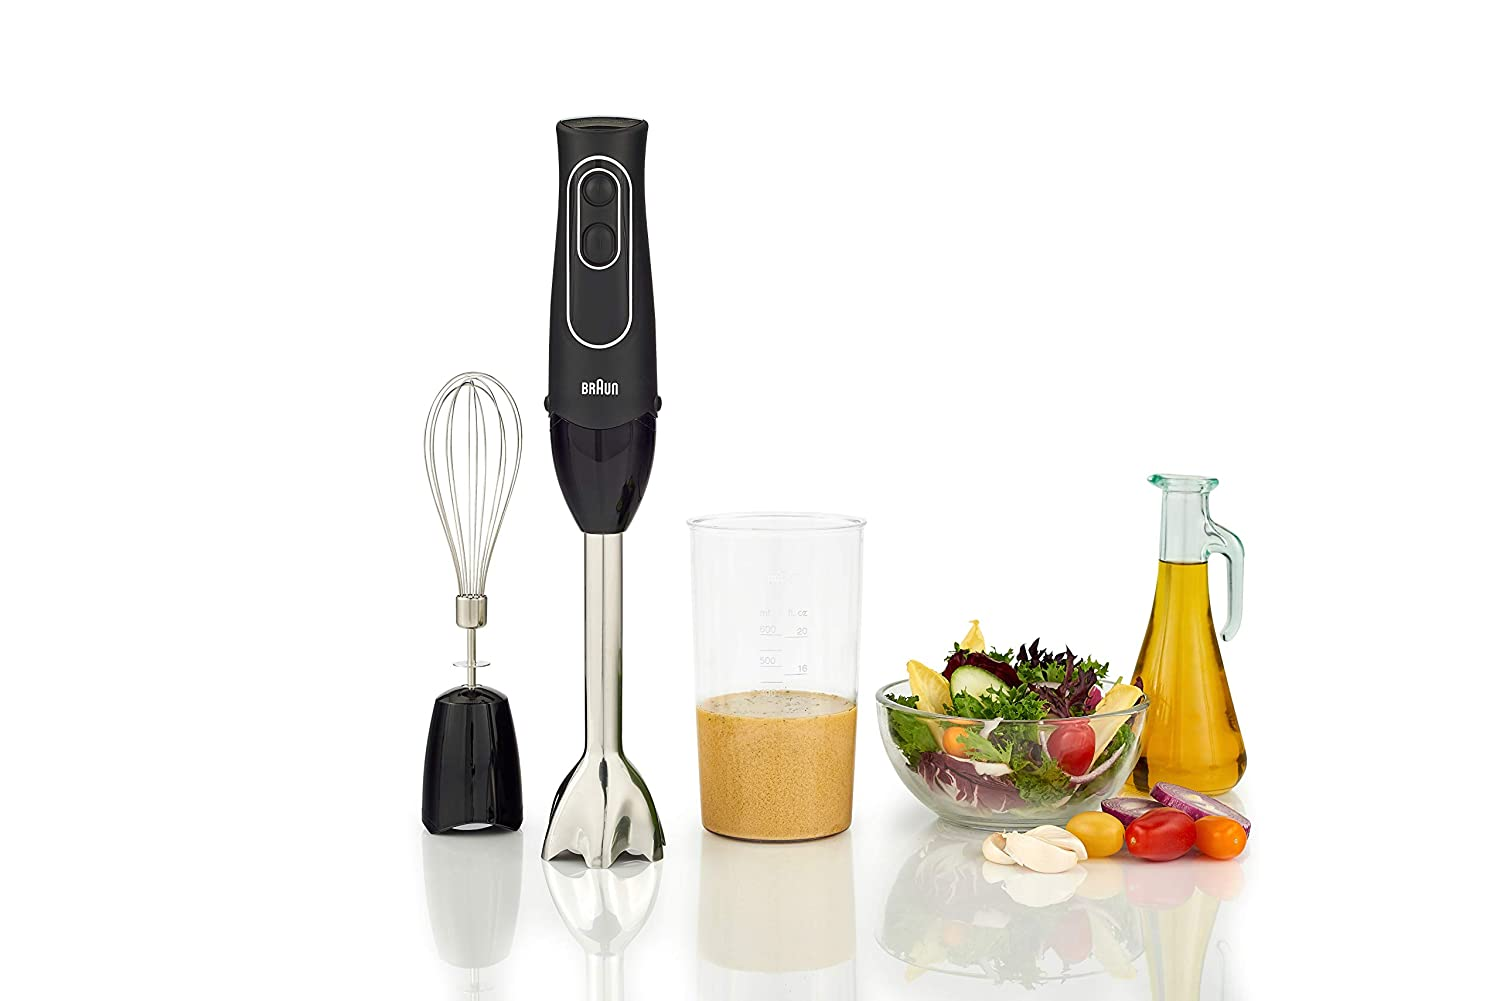 Amazon.com: Braun MQ537R MultiQuick 5 Immersion Hand Blender Patented Technology - Powerful 350 Watt - Dual Speed - Includes Beaker, Whisk, 2-Cup Chopper, ...